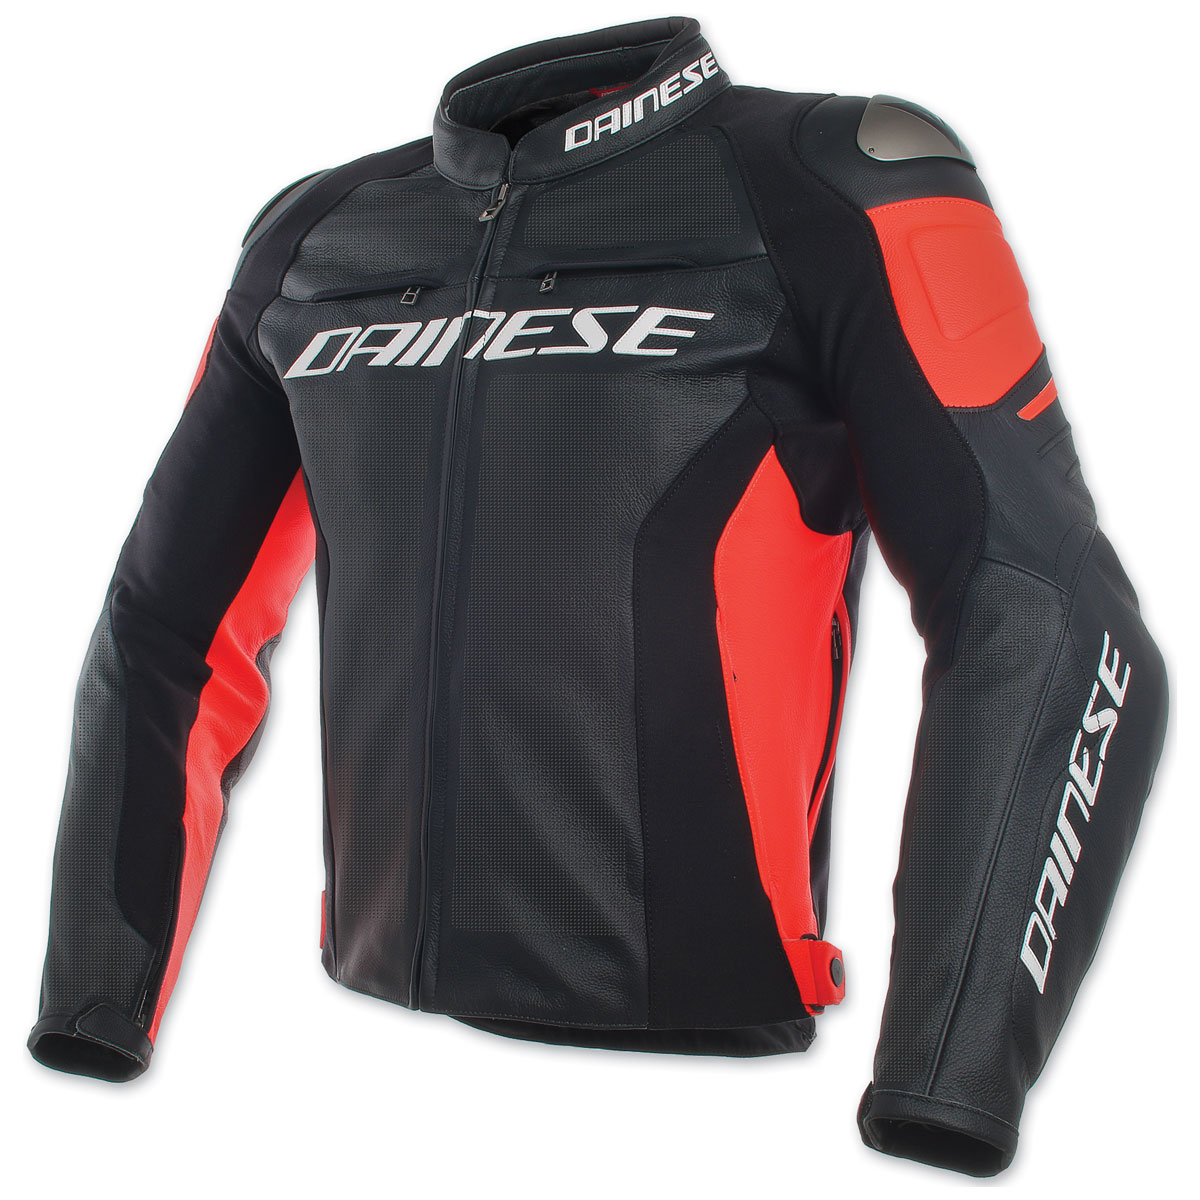 Dainese Men's Racing 3 Perforated Black/Black/Red Leather Jacket